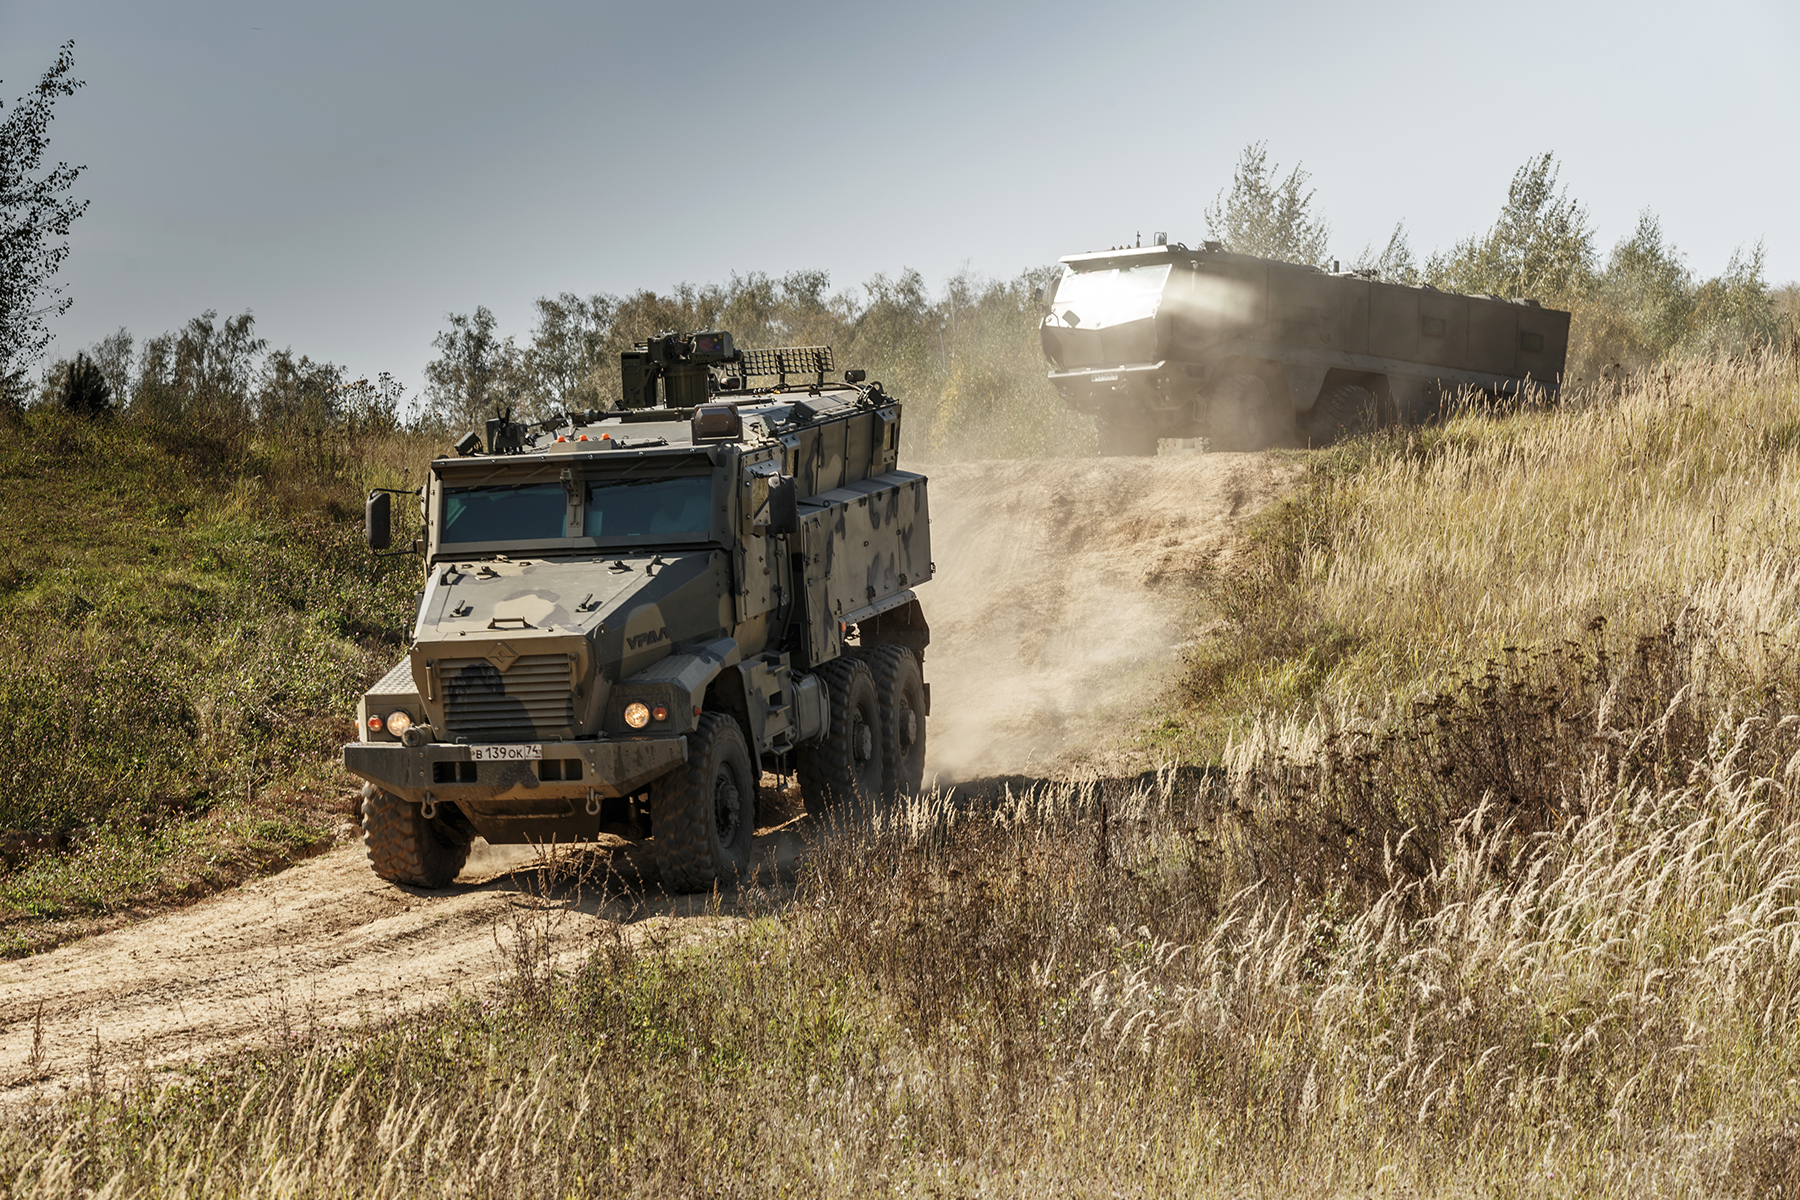 Typhoon MRAP family vechiles - Page 6 ZxRJq